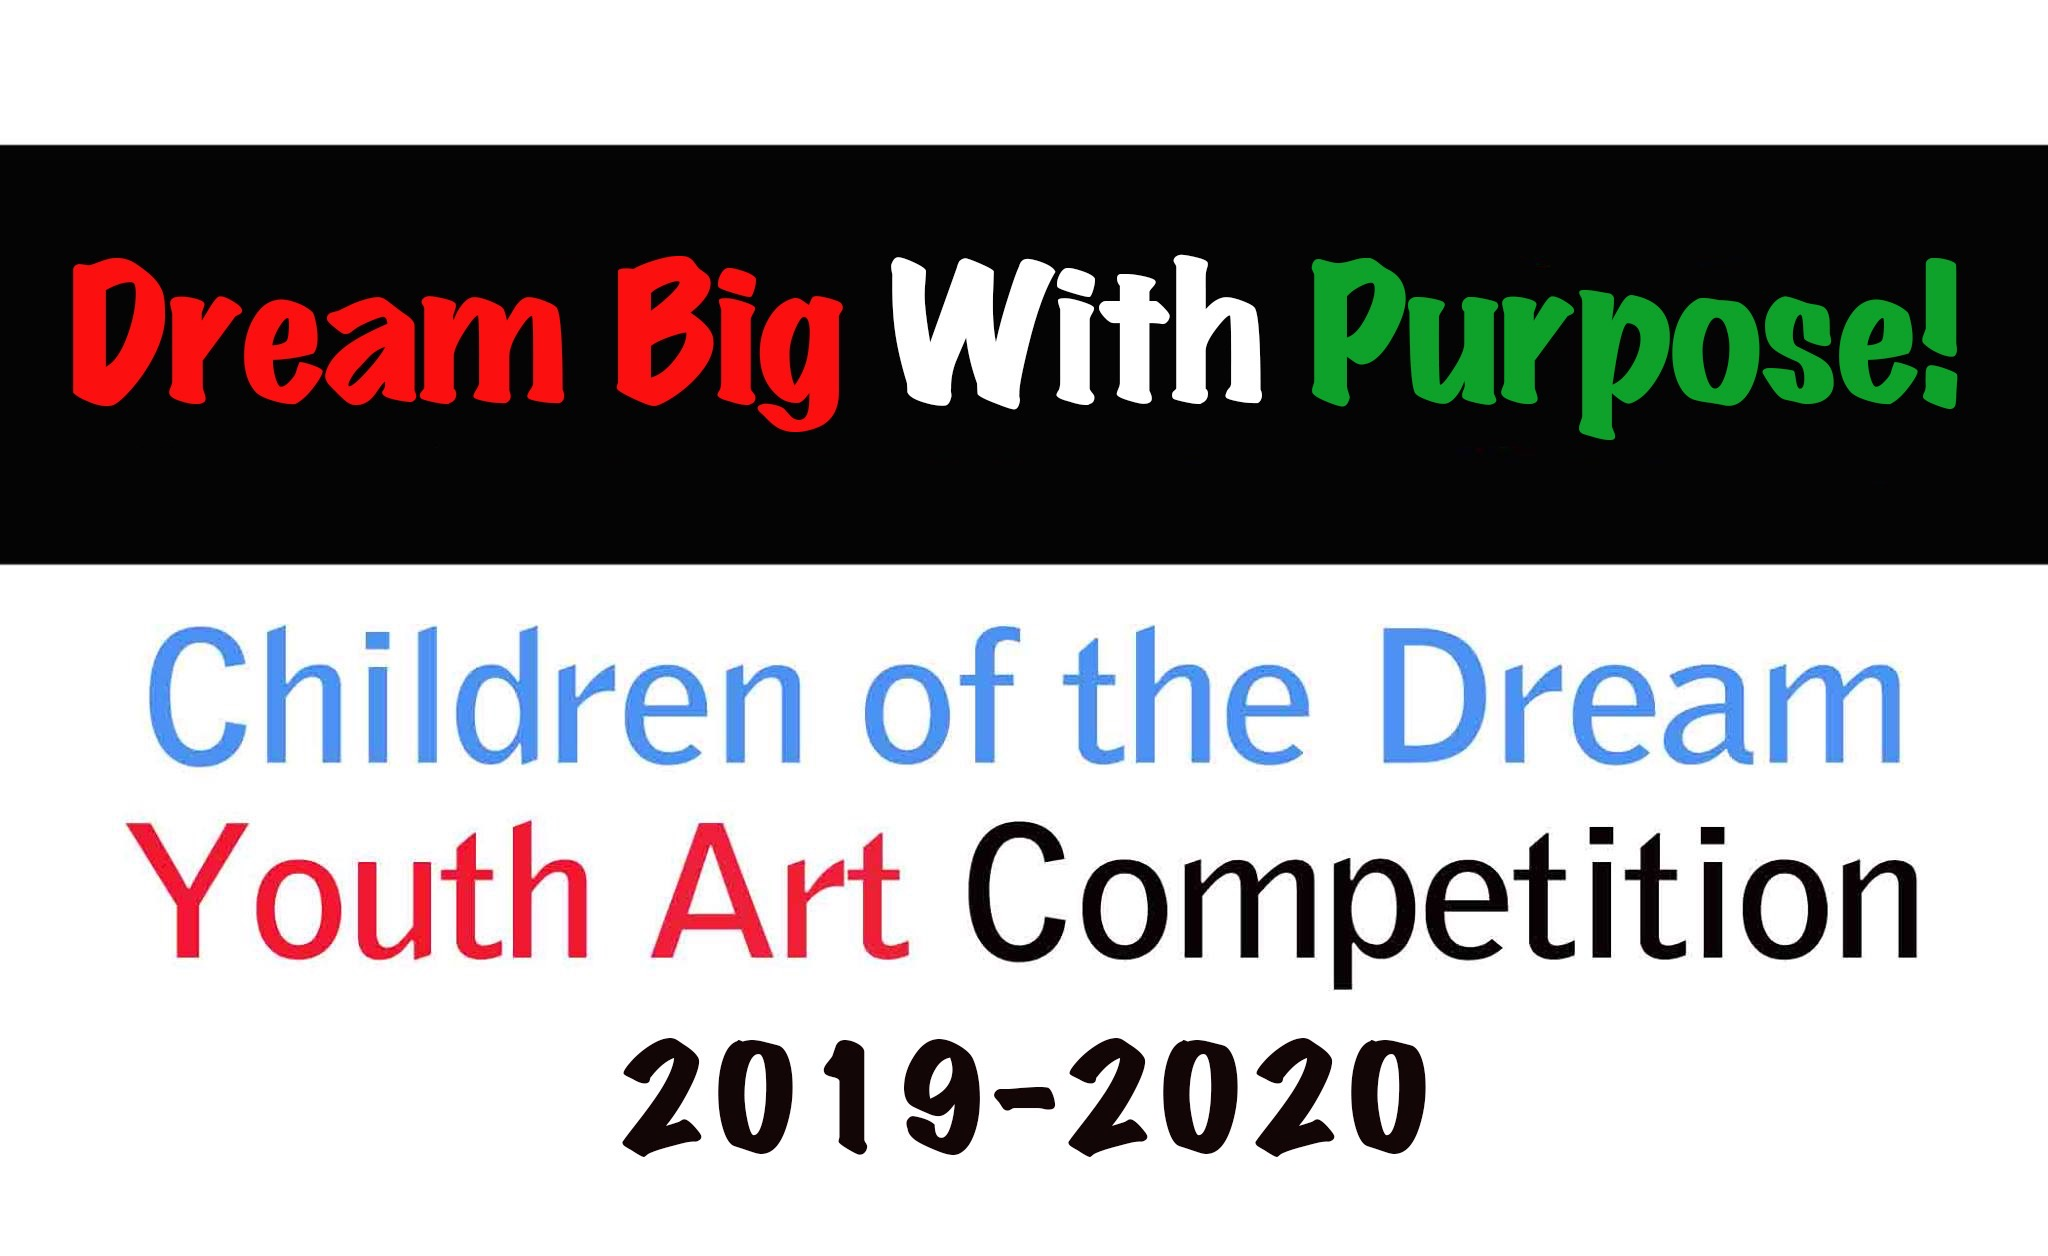 2019-2020 Children of the Dream Youth Art Competition Ceremony